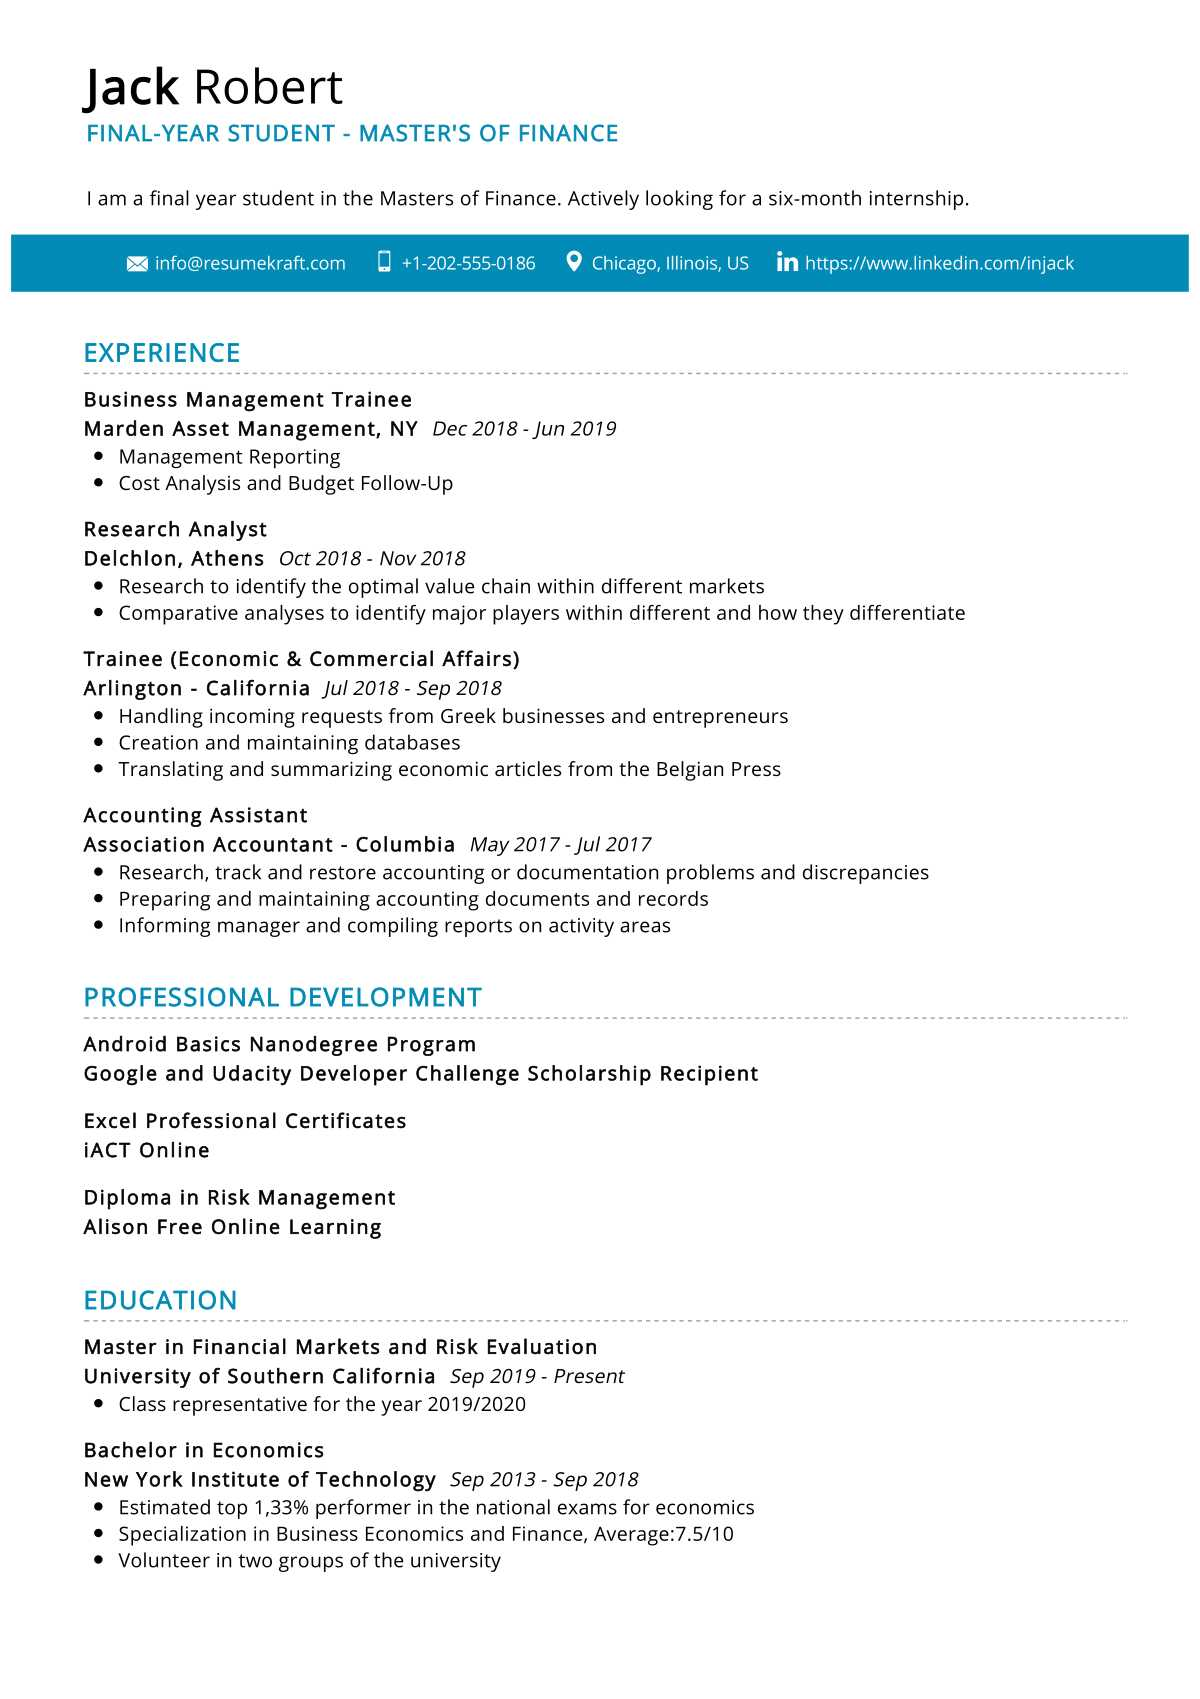 Final-year Student Resume